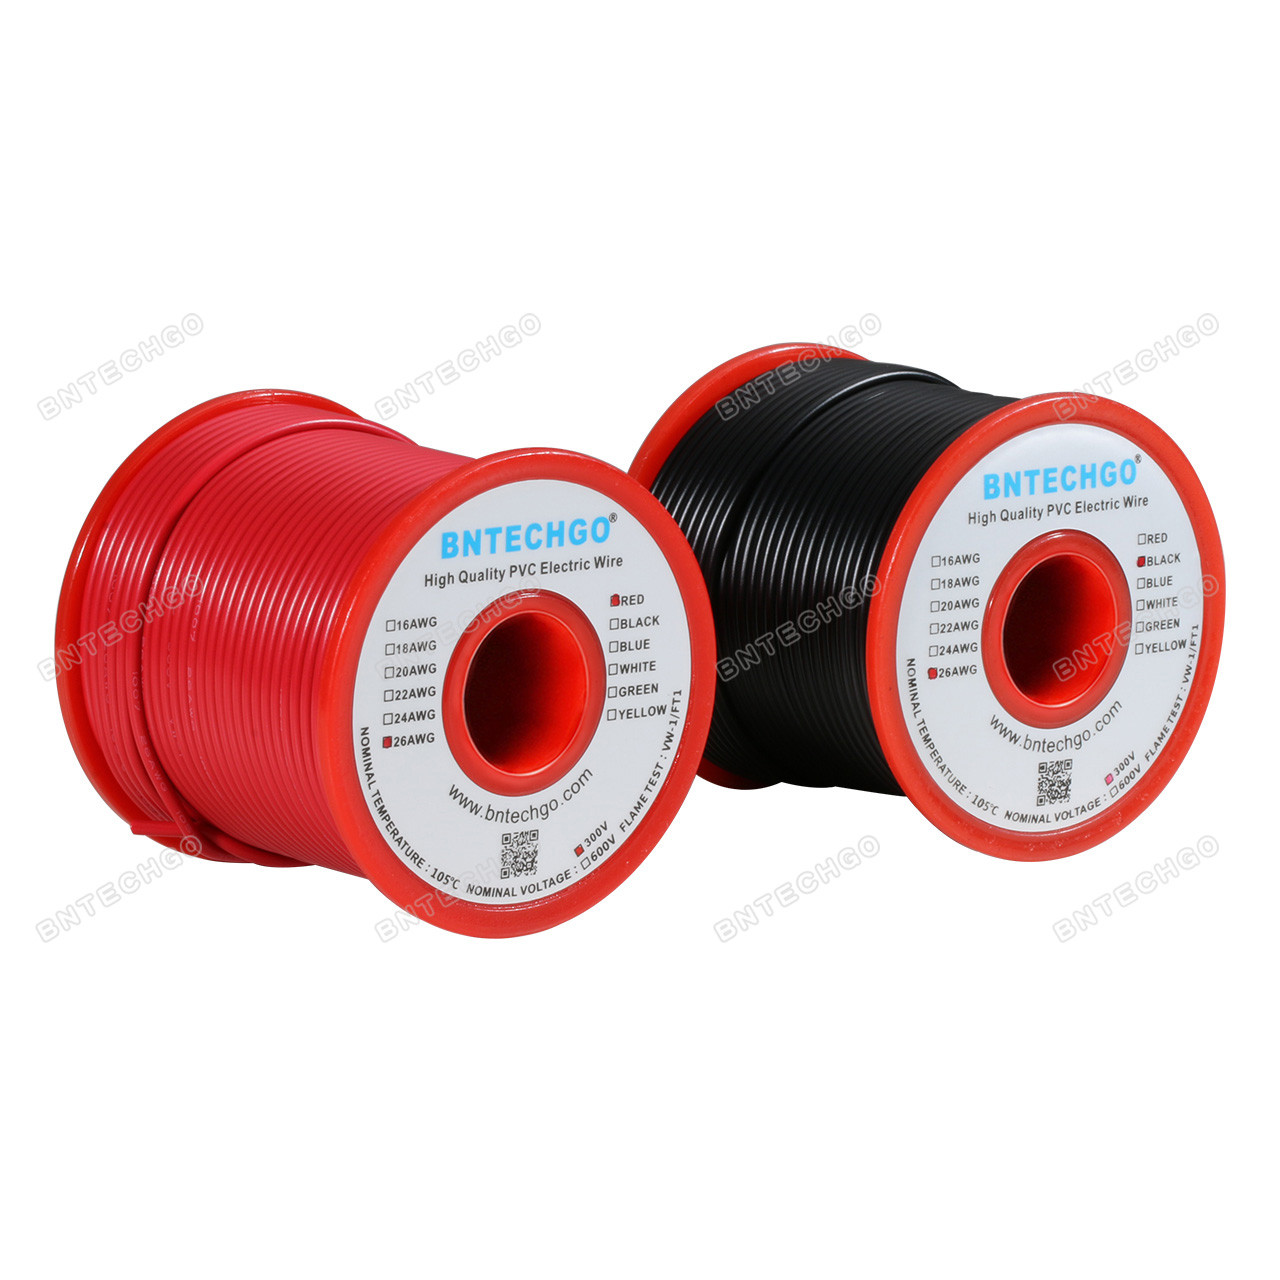 26 Gauge Wire >> Bntechgo 26 Awg 1007 Electric Wire 26 Gauge Pvc 1007 Wire Stranded Wire Hook Up Wire 300v Stranded Tinned Copper Wire Red And Black Each Color 100 Ft